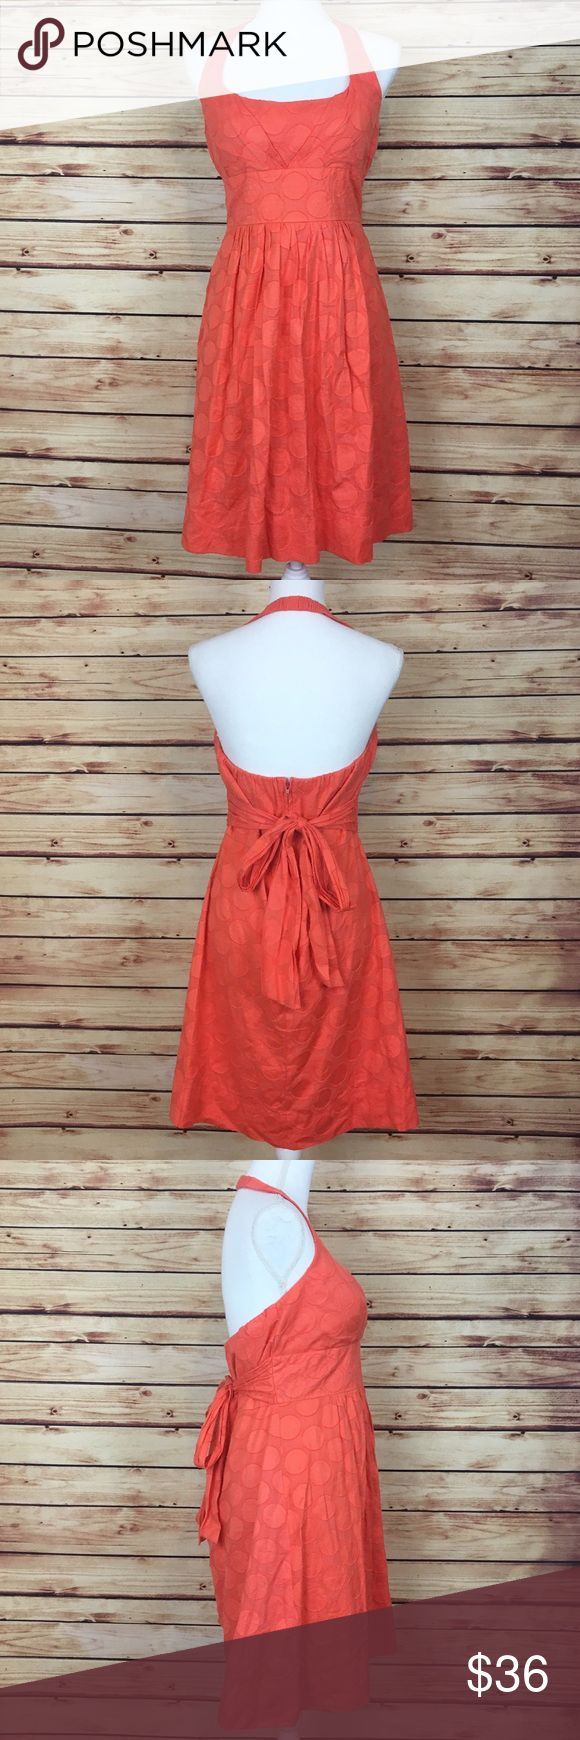 "B. Smart Orange Polka Dot Halter Dress Size 14 B. Smart Dress. Orange. Polka dot. Halter neck. Waist tie. Back zip. Size 14.  Excellent preowned condition with no flaws.  Measurements are approximately: 34"" bust, 33"" waist, 45"" hips, and 21.5"" waist to hem length.  100% cotton.  No trades. All items come from a pet friendly, smoke free home. Bundle to save! B. Smart Dresses"